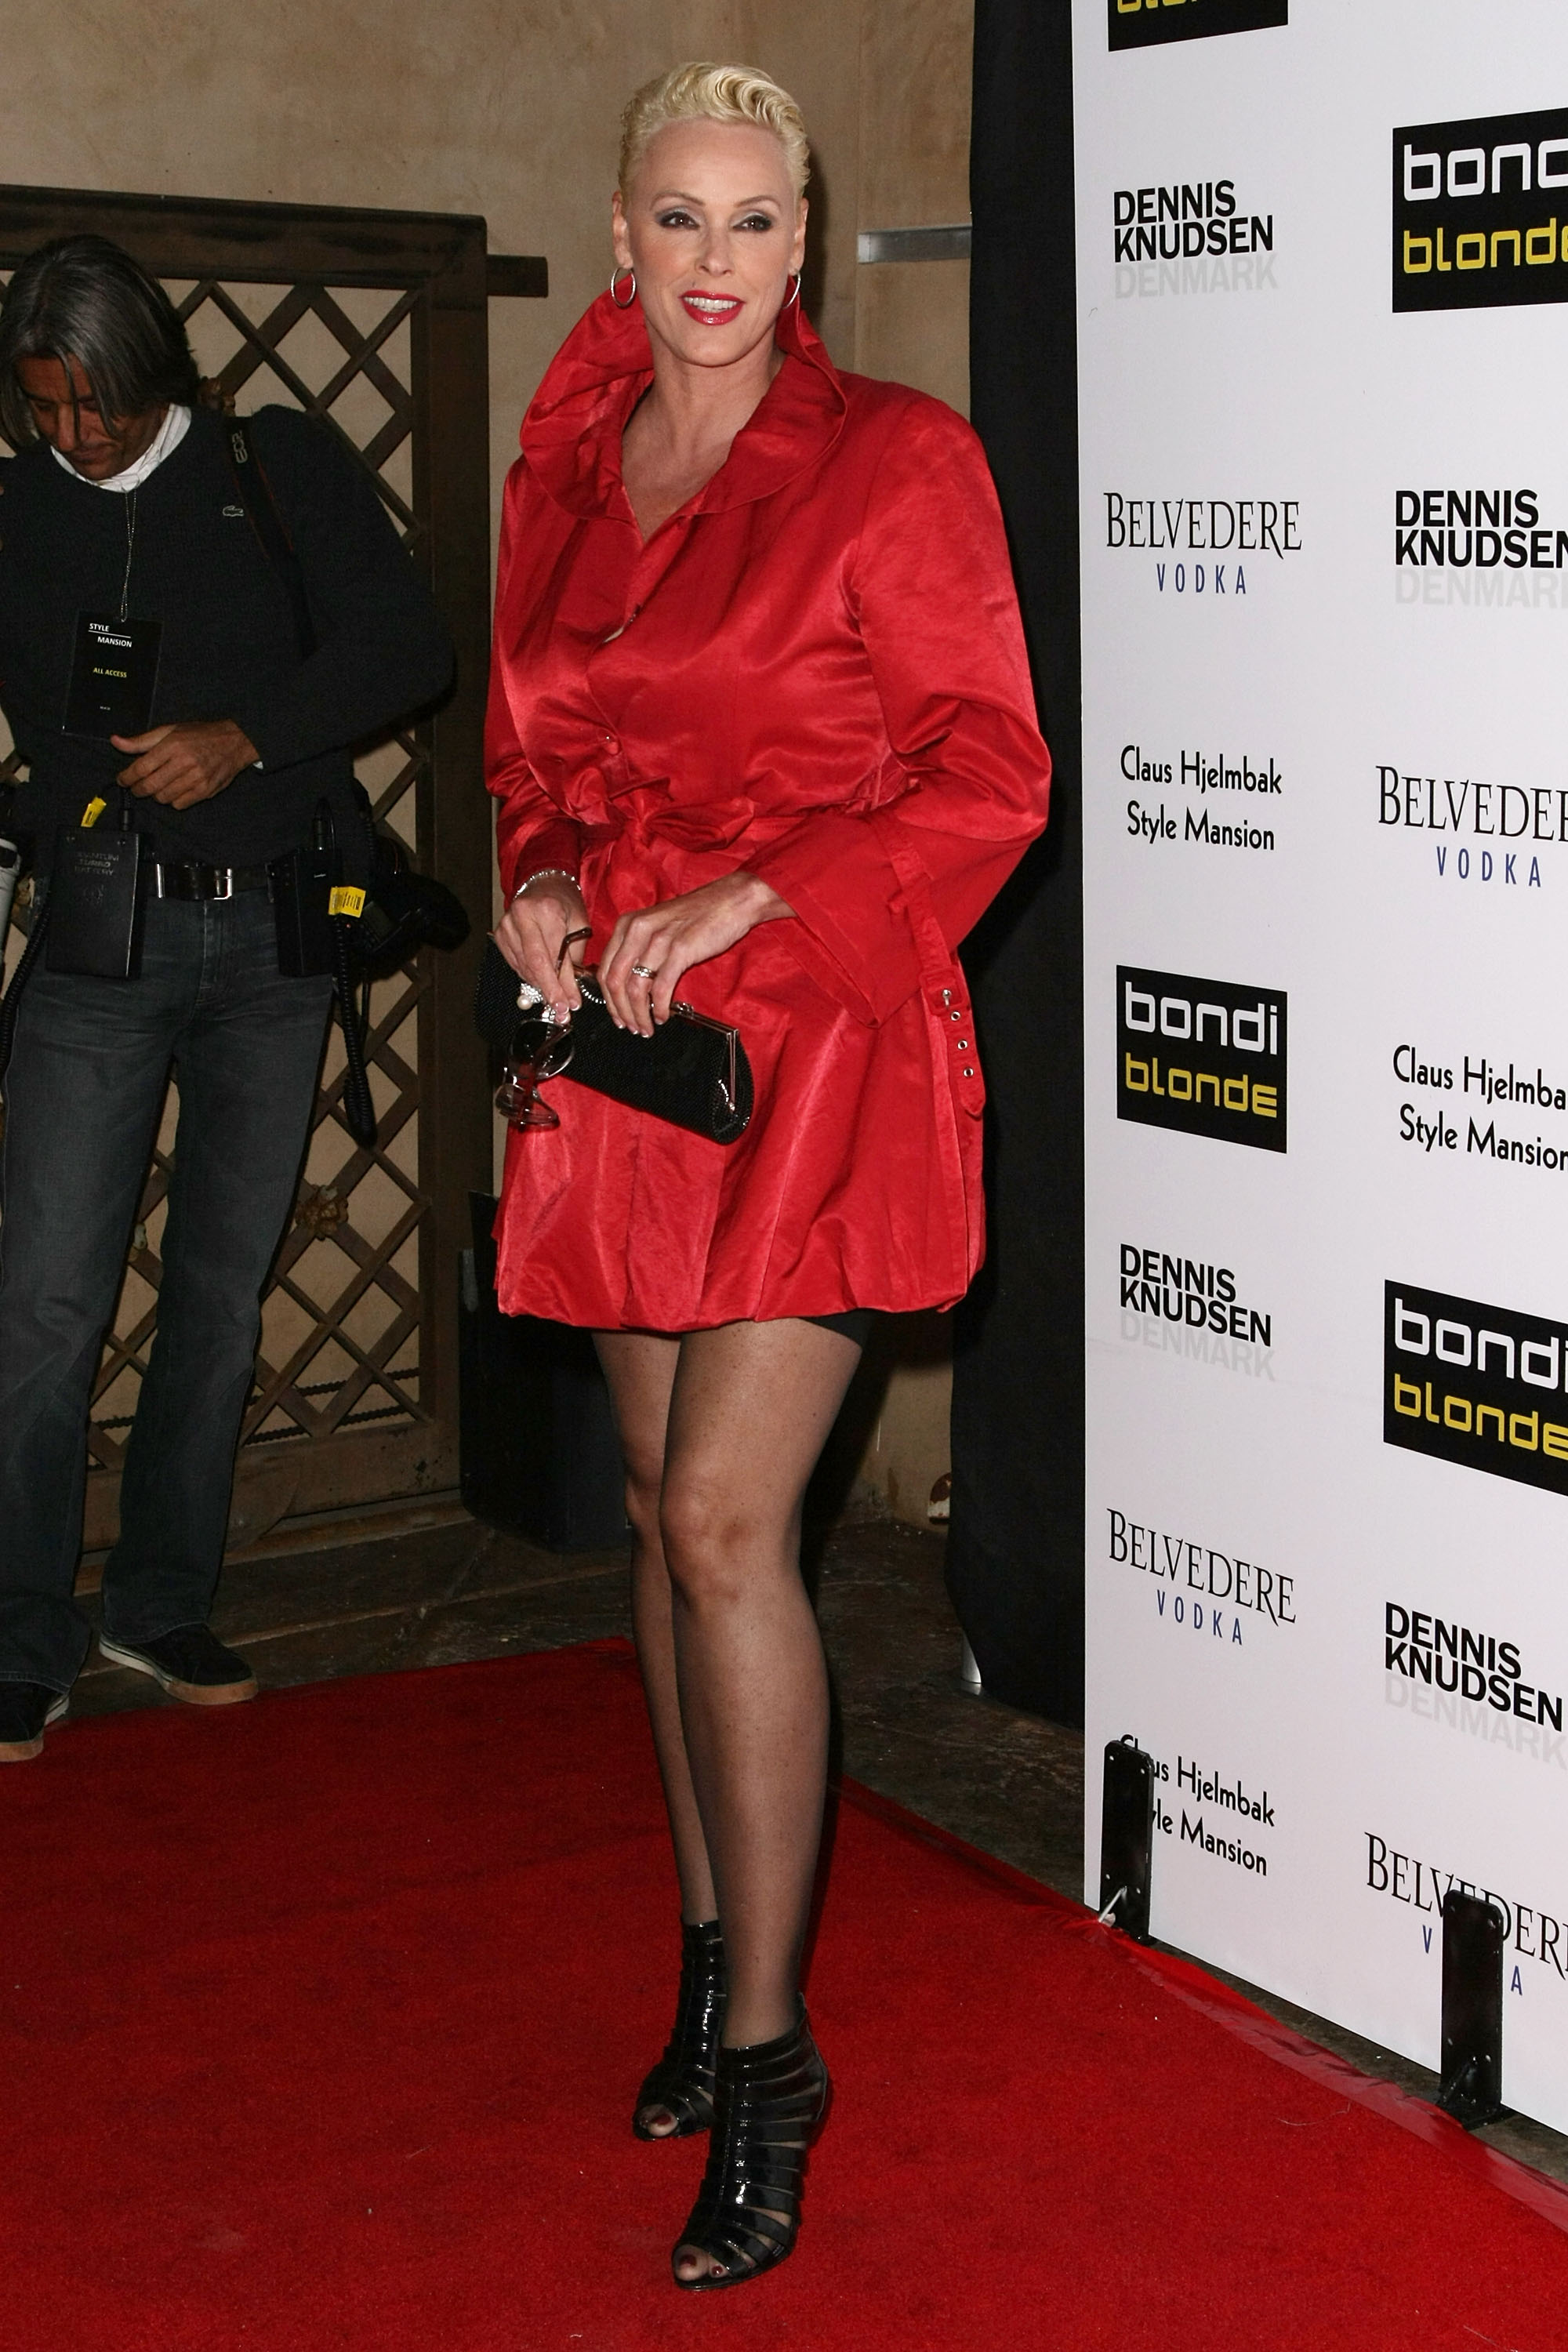 Brigitte Nielsen attends the Bondi Blonde's Style Mansion at the Style Mansion International on February 9, 2009 in Beverly Hills, California.